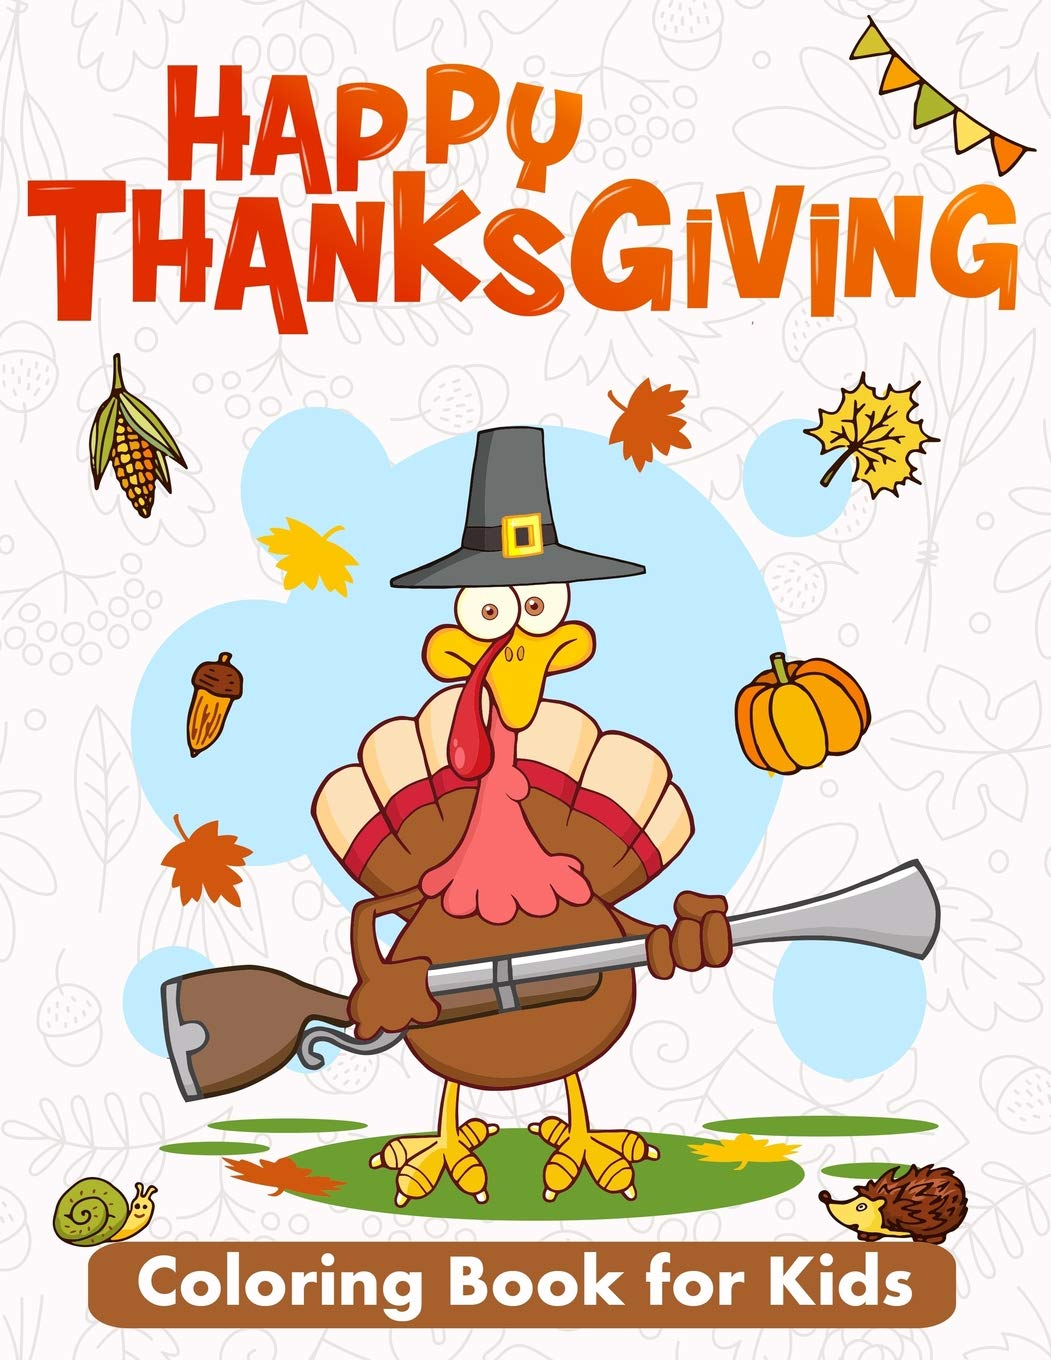 - Happy Thanksgiving Coloring Book For Kids: 50 Thanksgiving Images